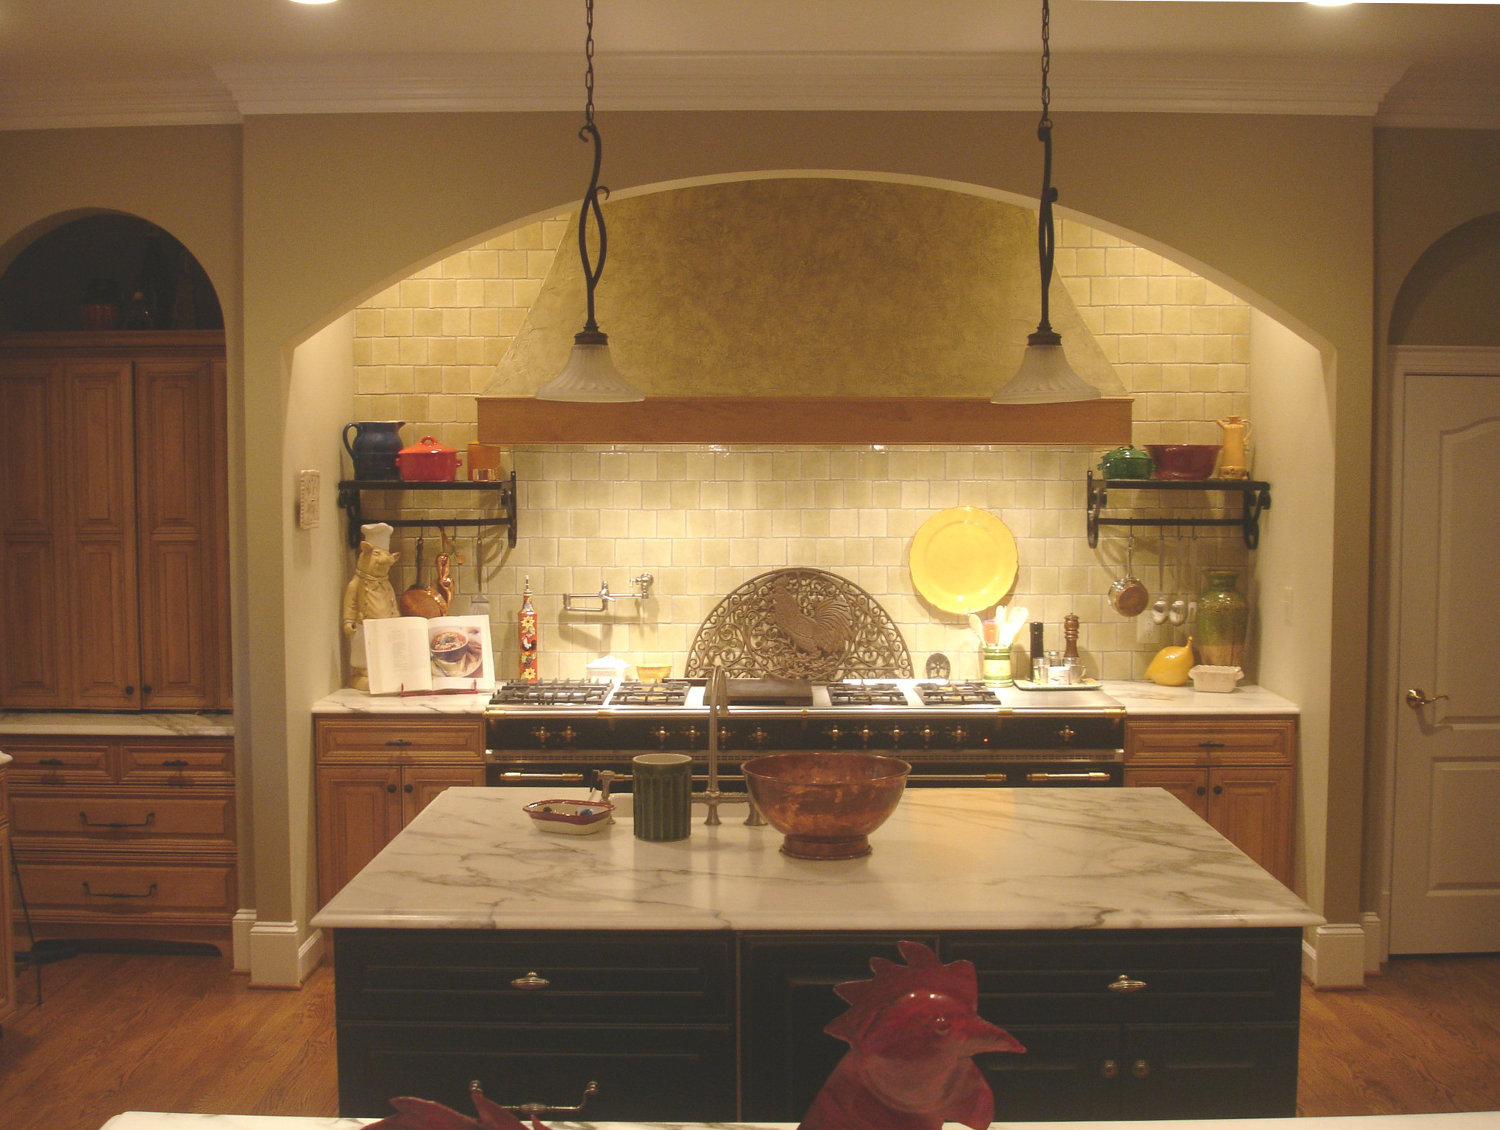 maple cabinet family kitchen with black and green accents - Atticmag